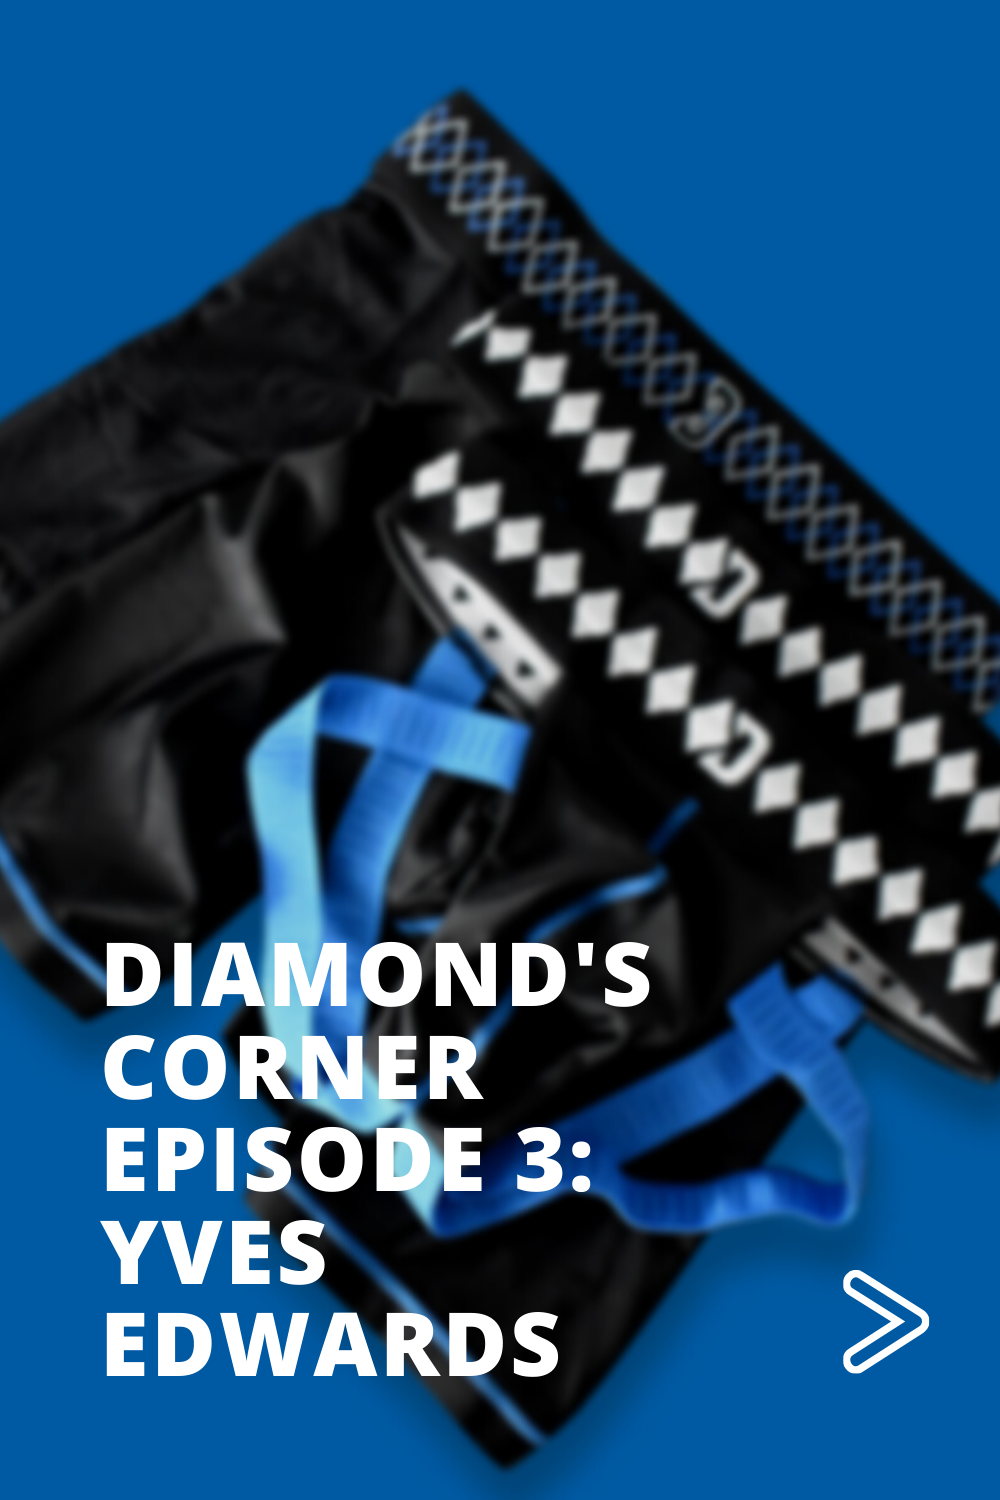 Diamond's Corner Episode 3: Yves Edwards